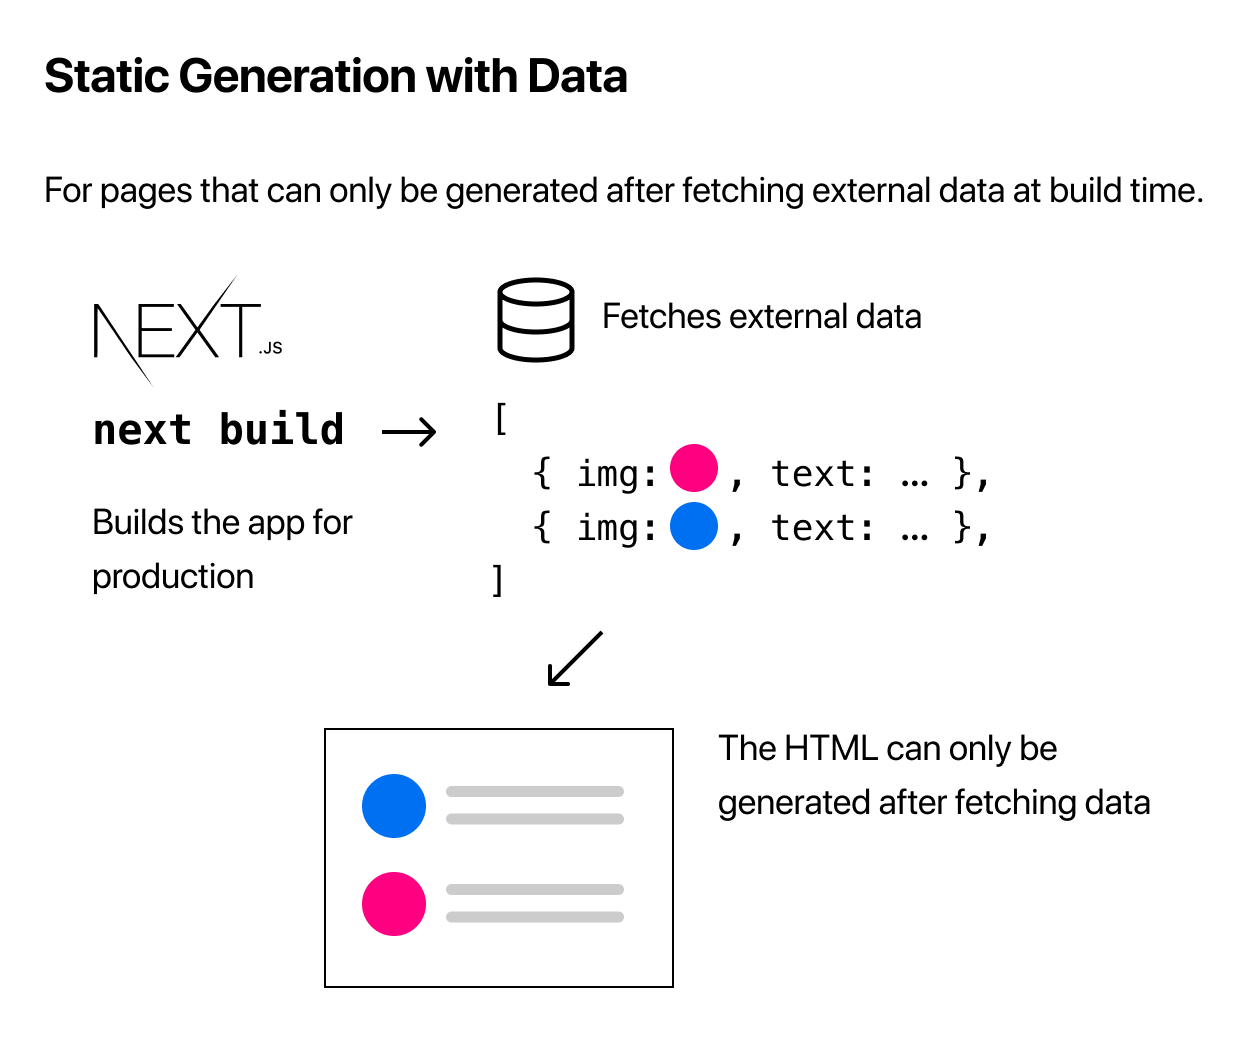 Static Generation with Data